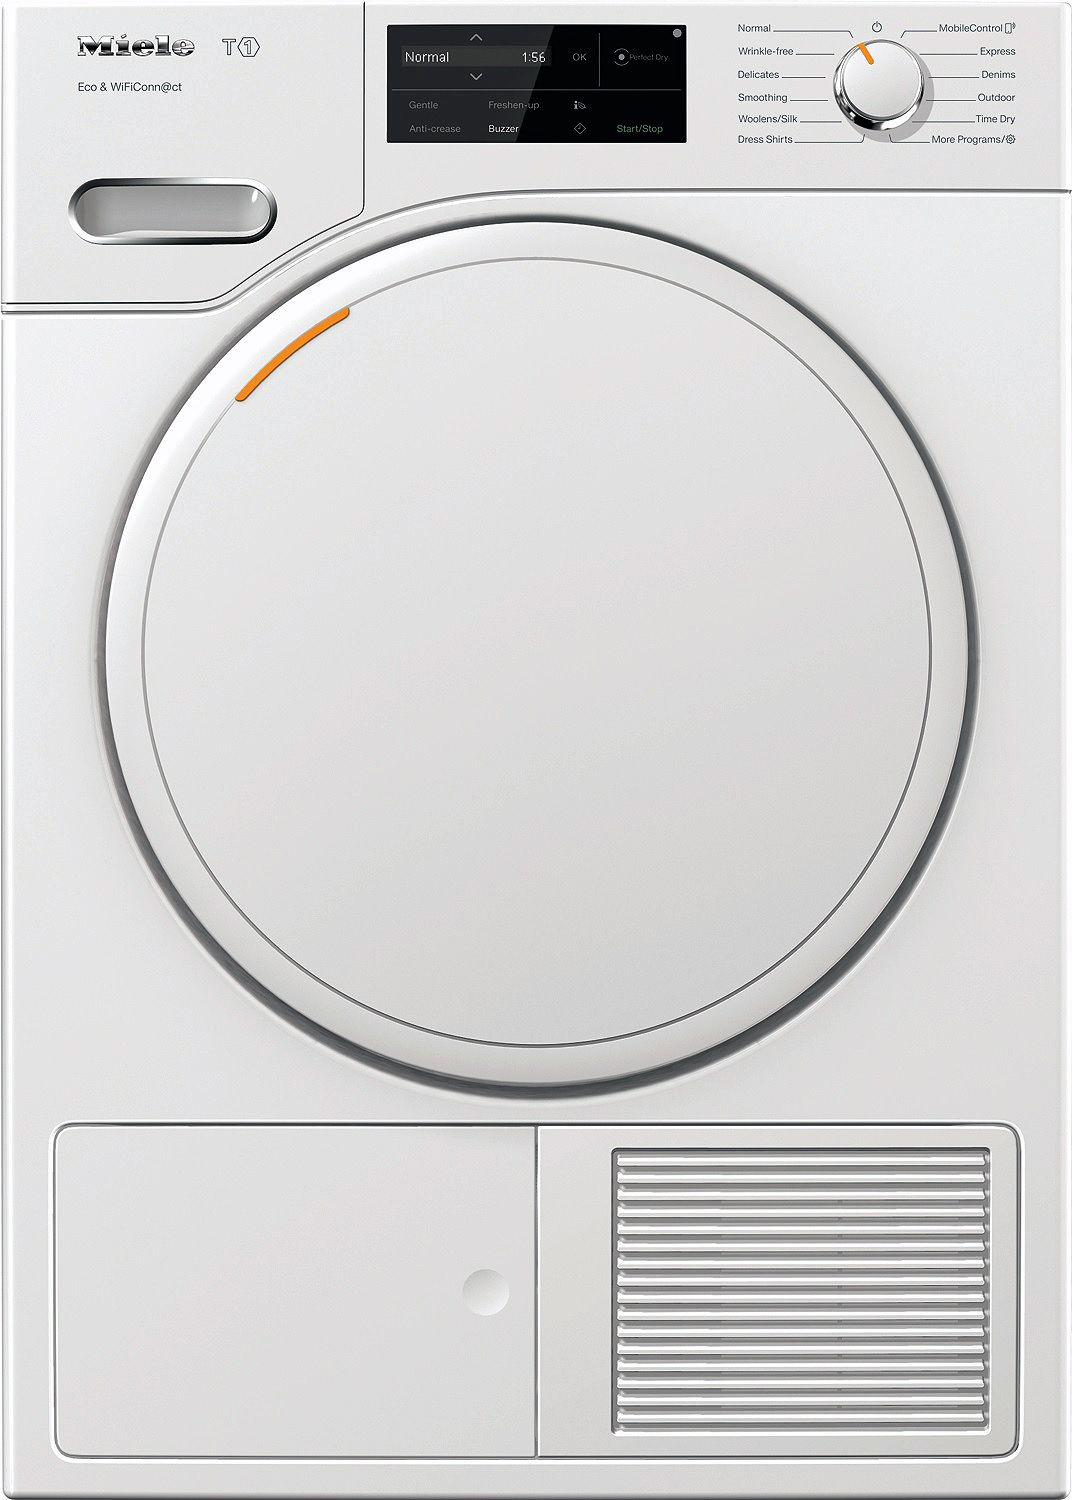 Miele T1 Lotus White Electric Dryer 12wf1602usa Electrical How Do I Connect A With Four Prong Plug To